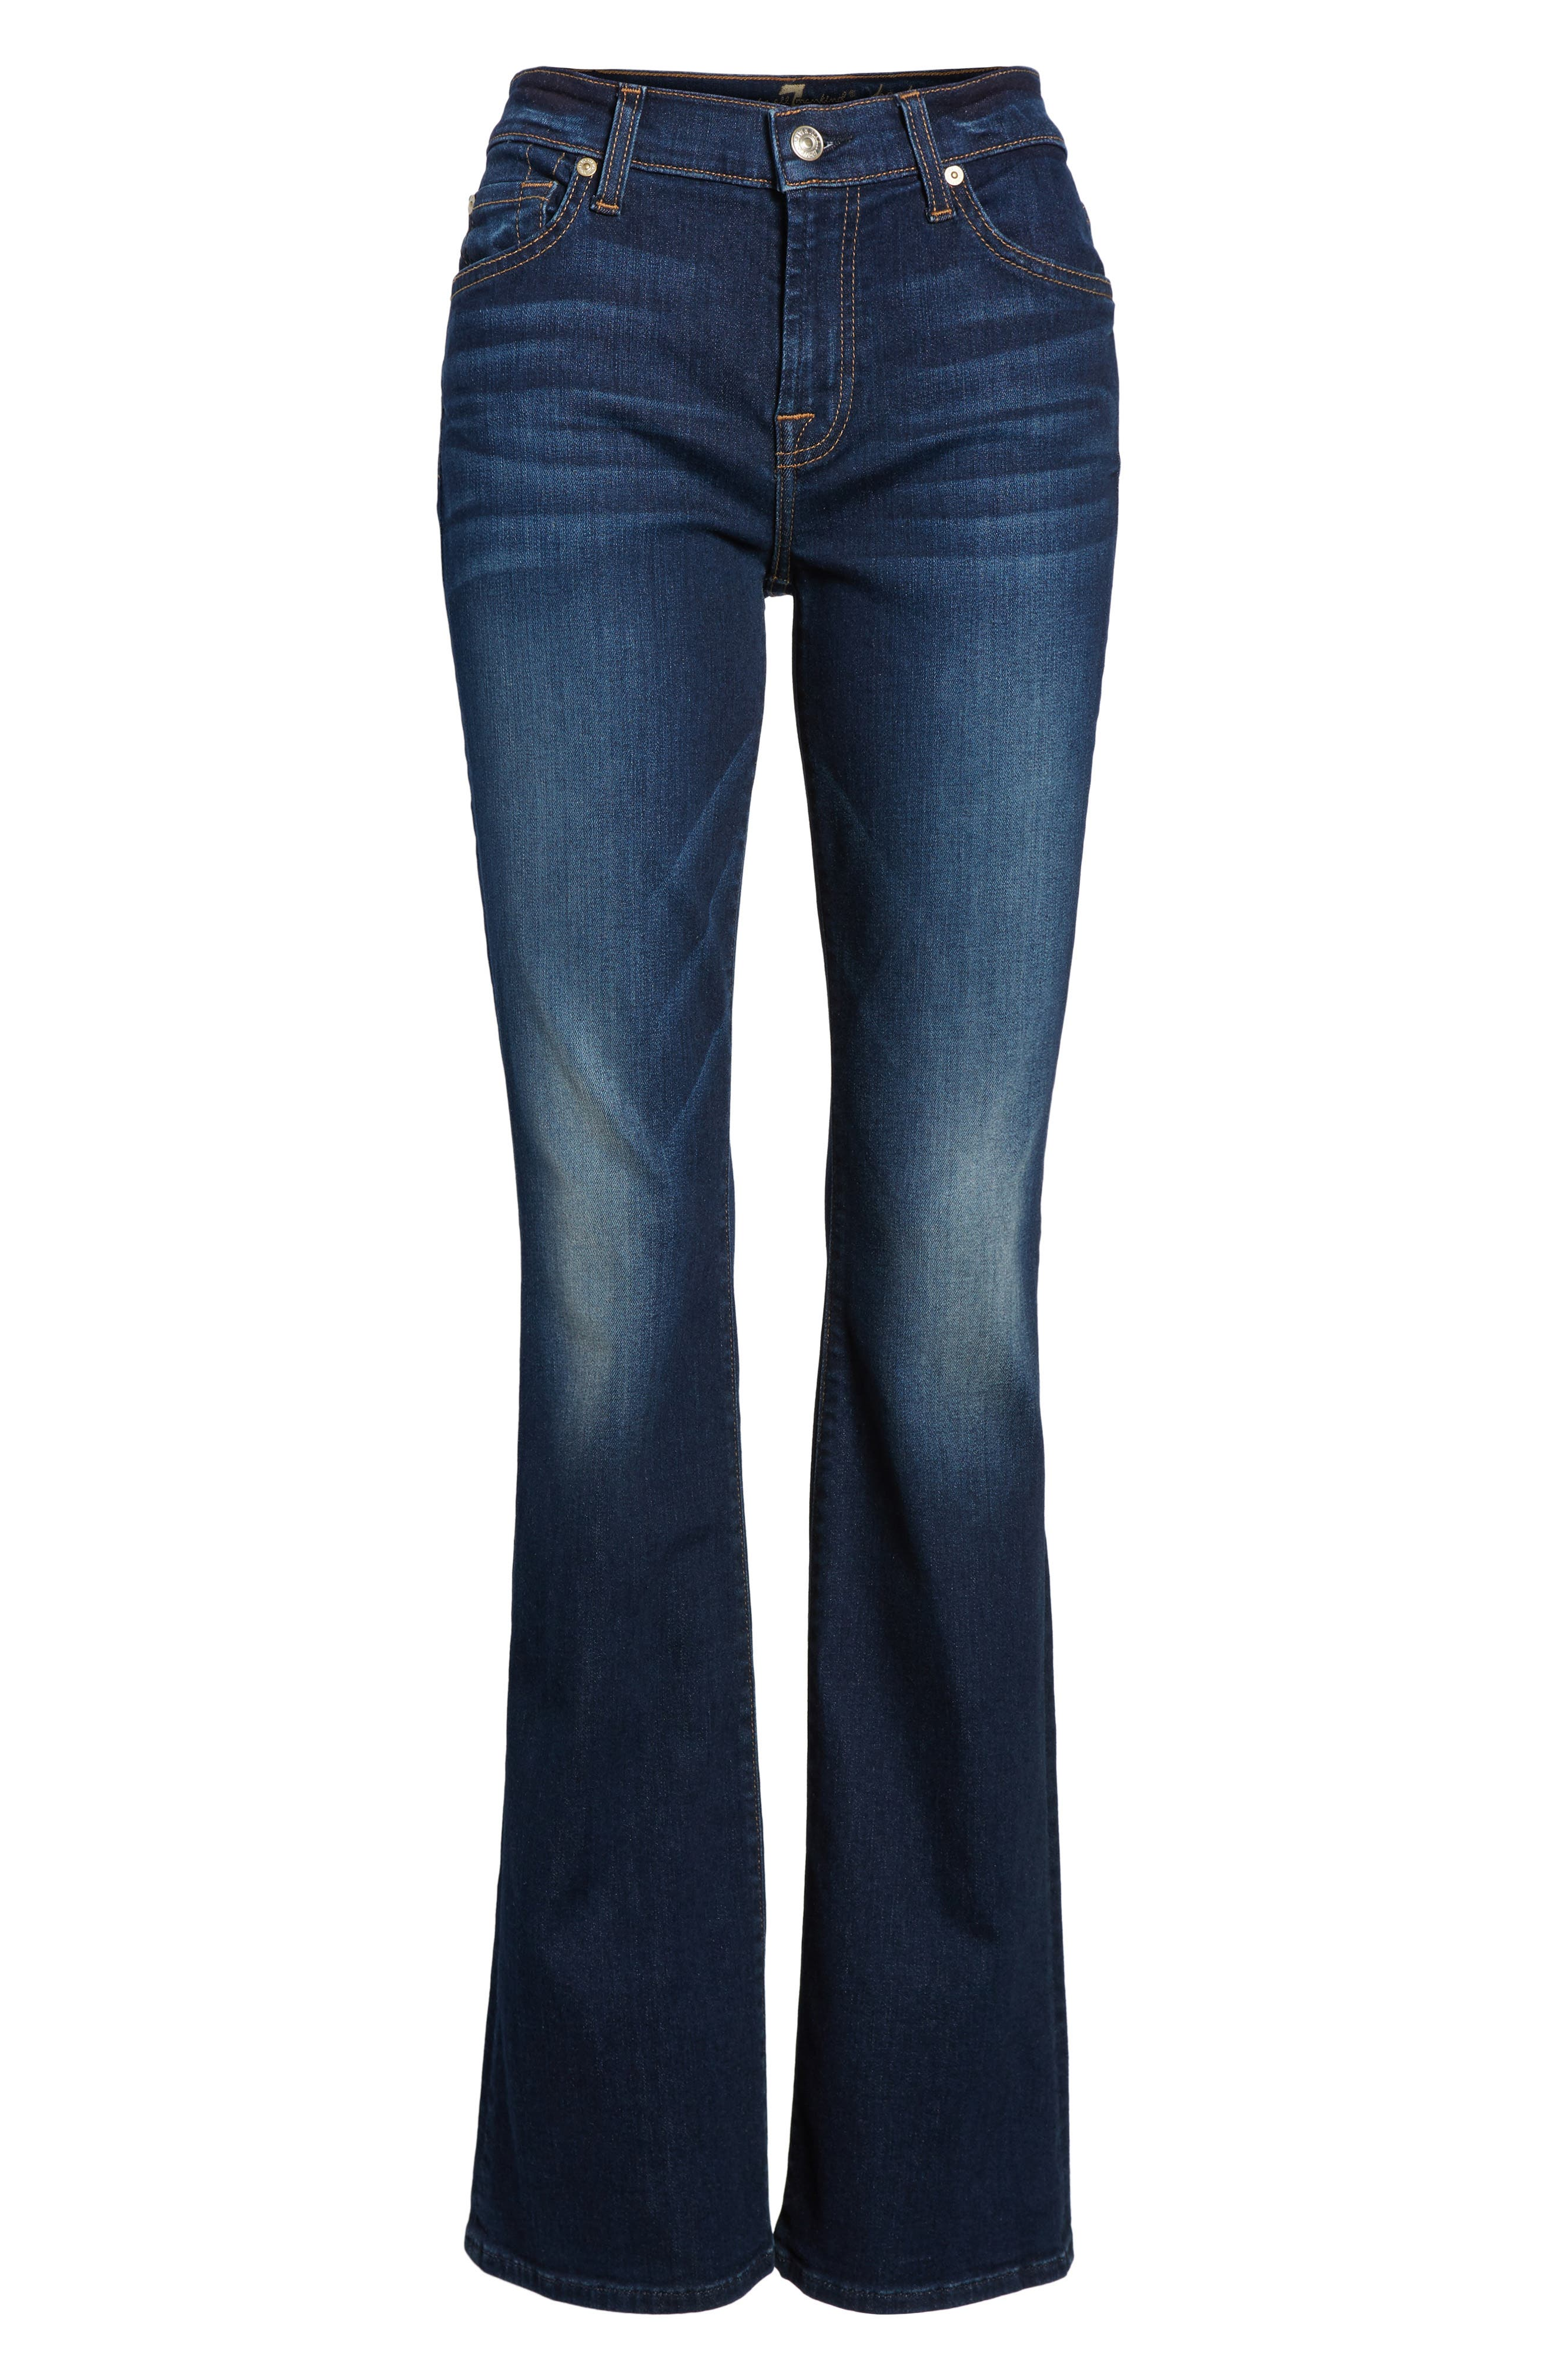 b(air) Tailorless Iconic Bootcut Jeans,                             Alternate thumbnail 6, color,                             MORENO